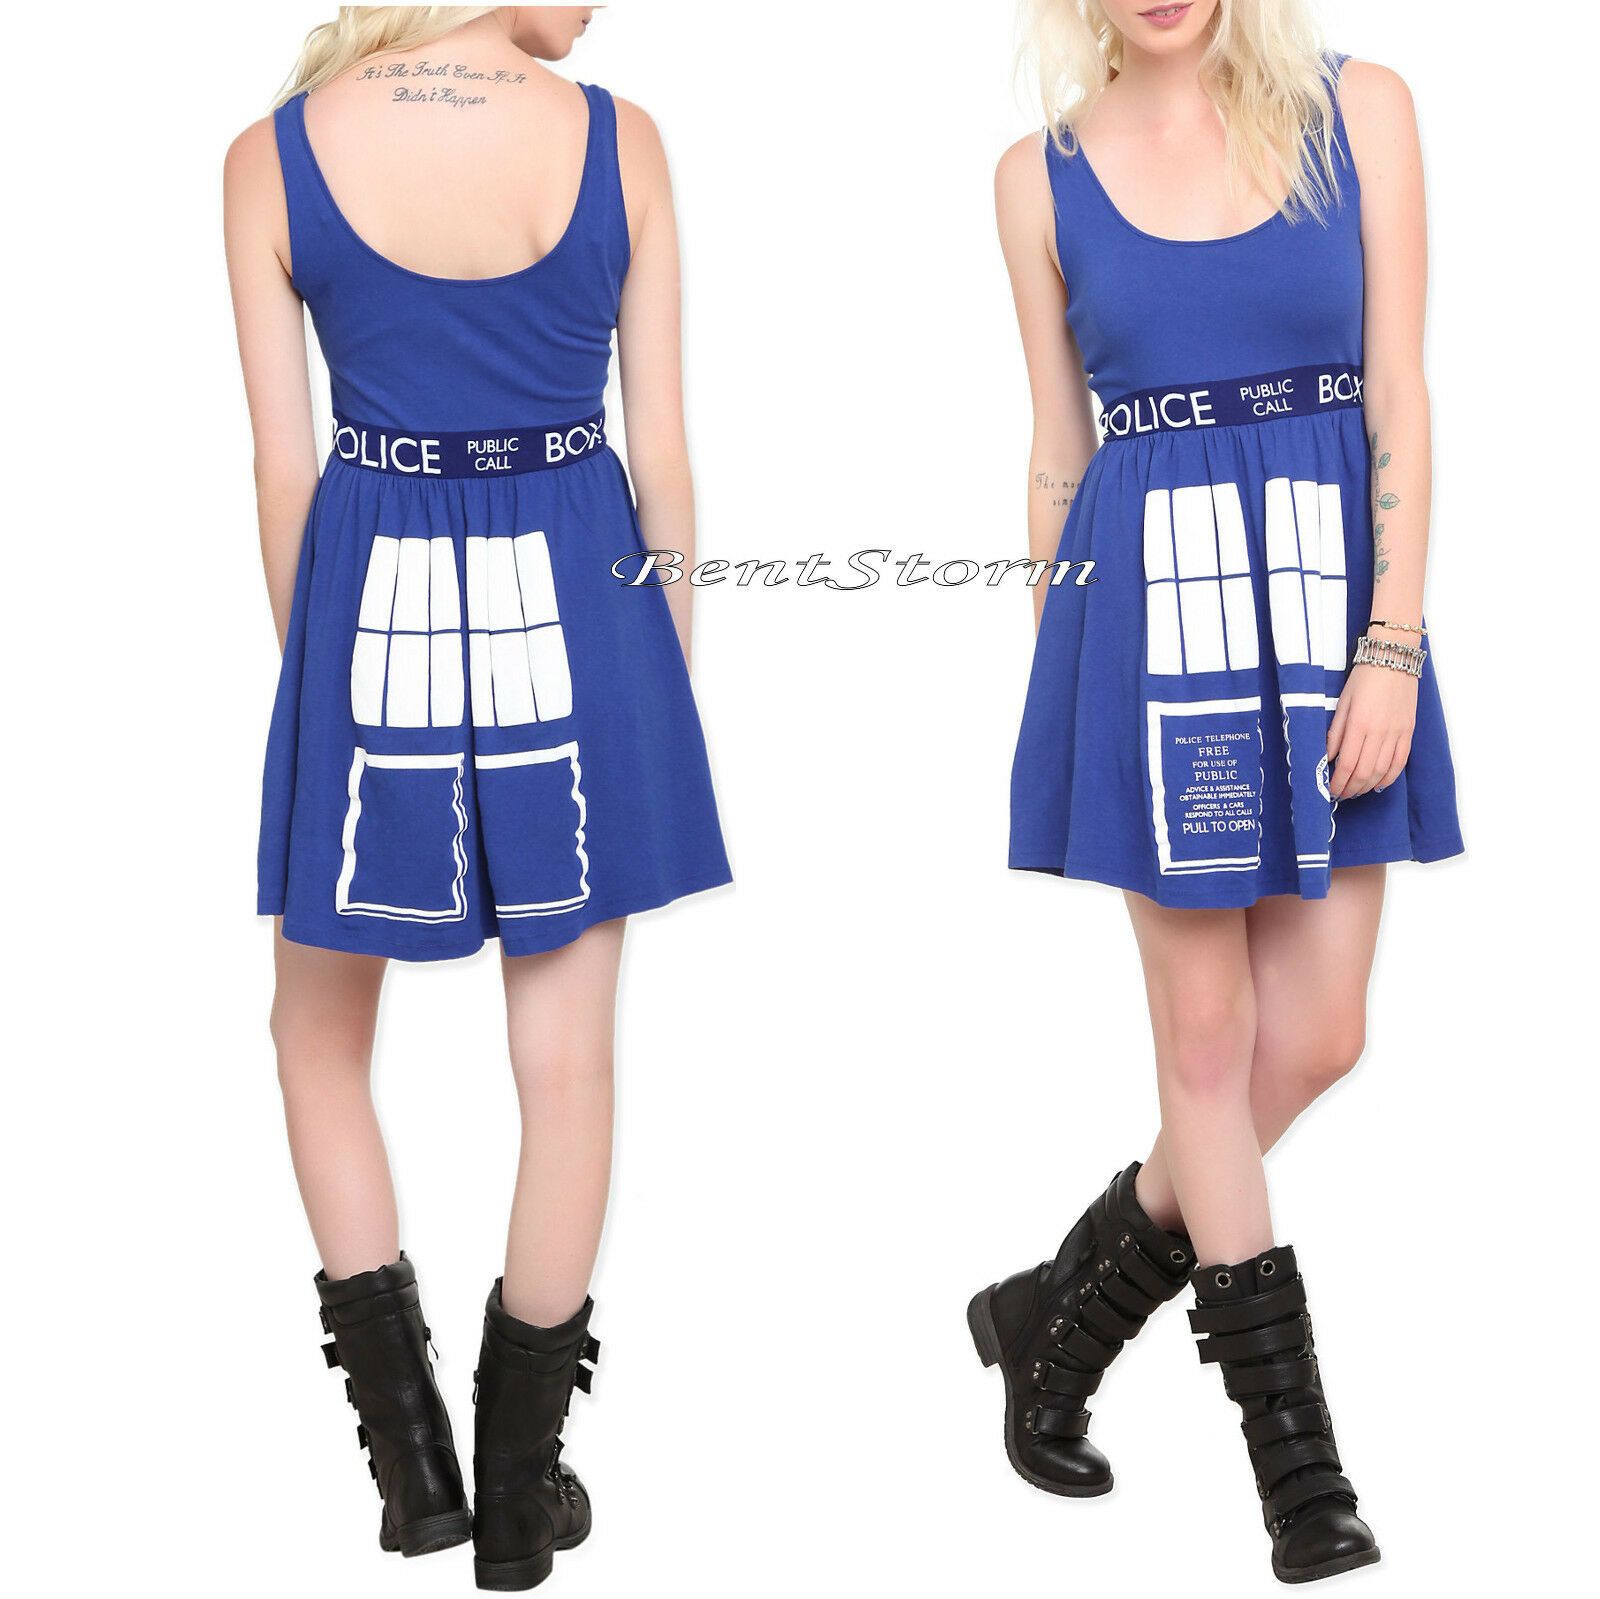 Doctor Dr. Who - BBC Her Universe Costume Tardis Skater Dress Police Call Box